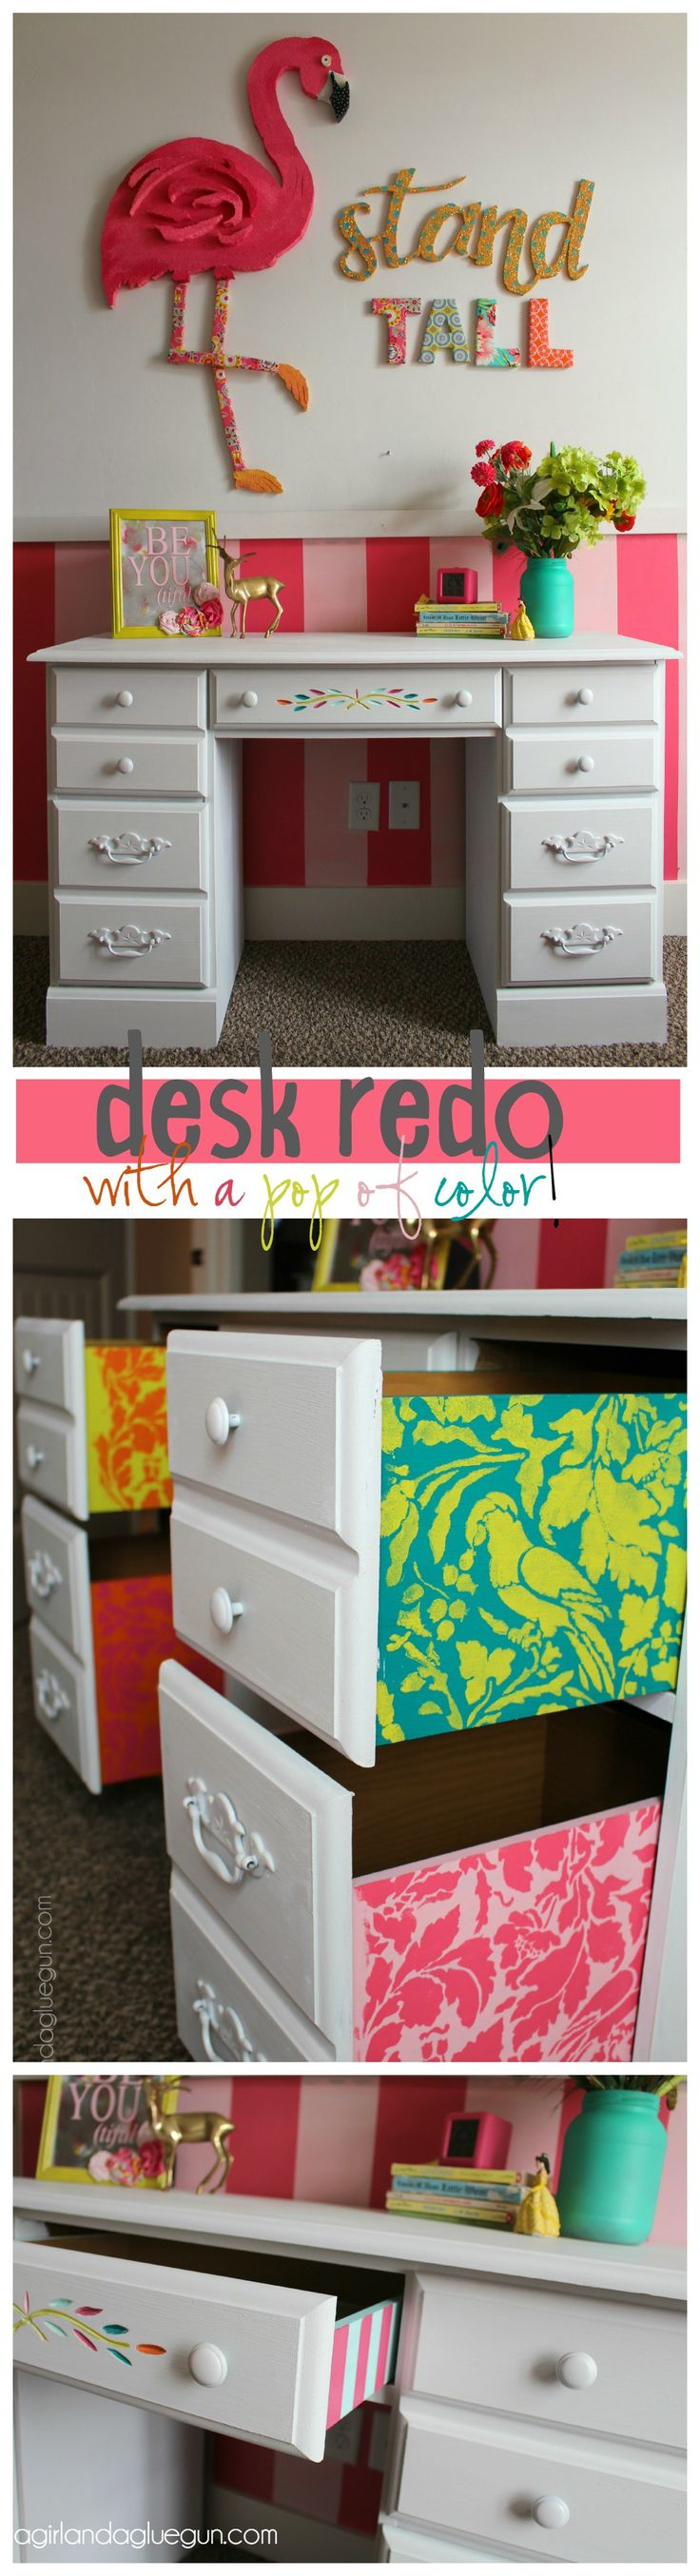 desk for little girls room repainted and stencil inside of drawers for a pop of color!